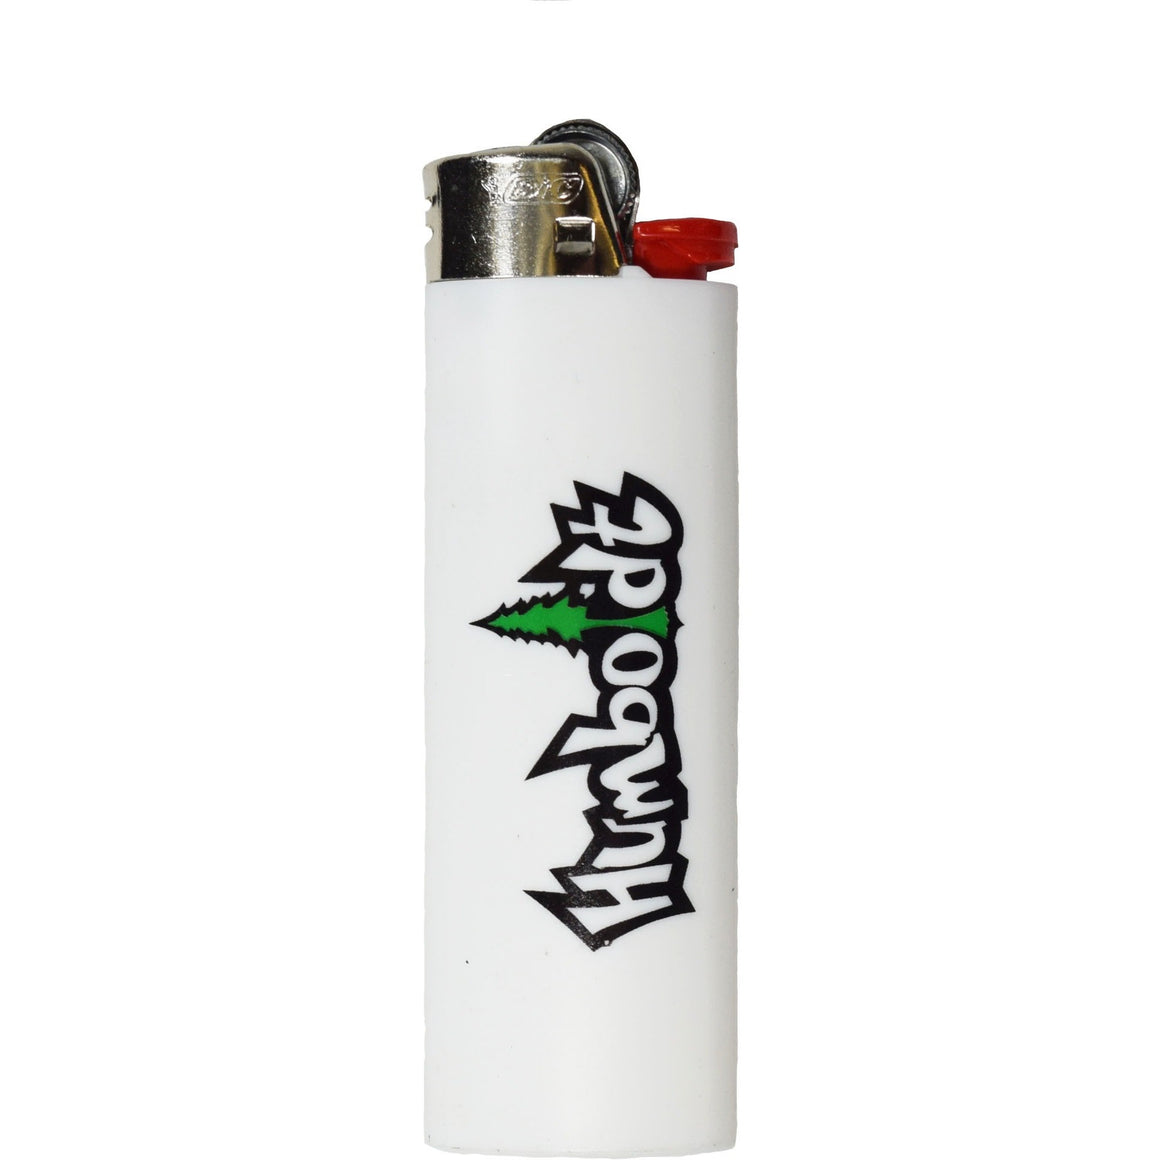 White Treelogo Bic Lighter - Humboldt Clothing Company